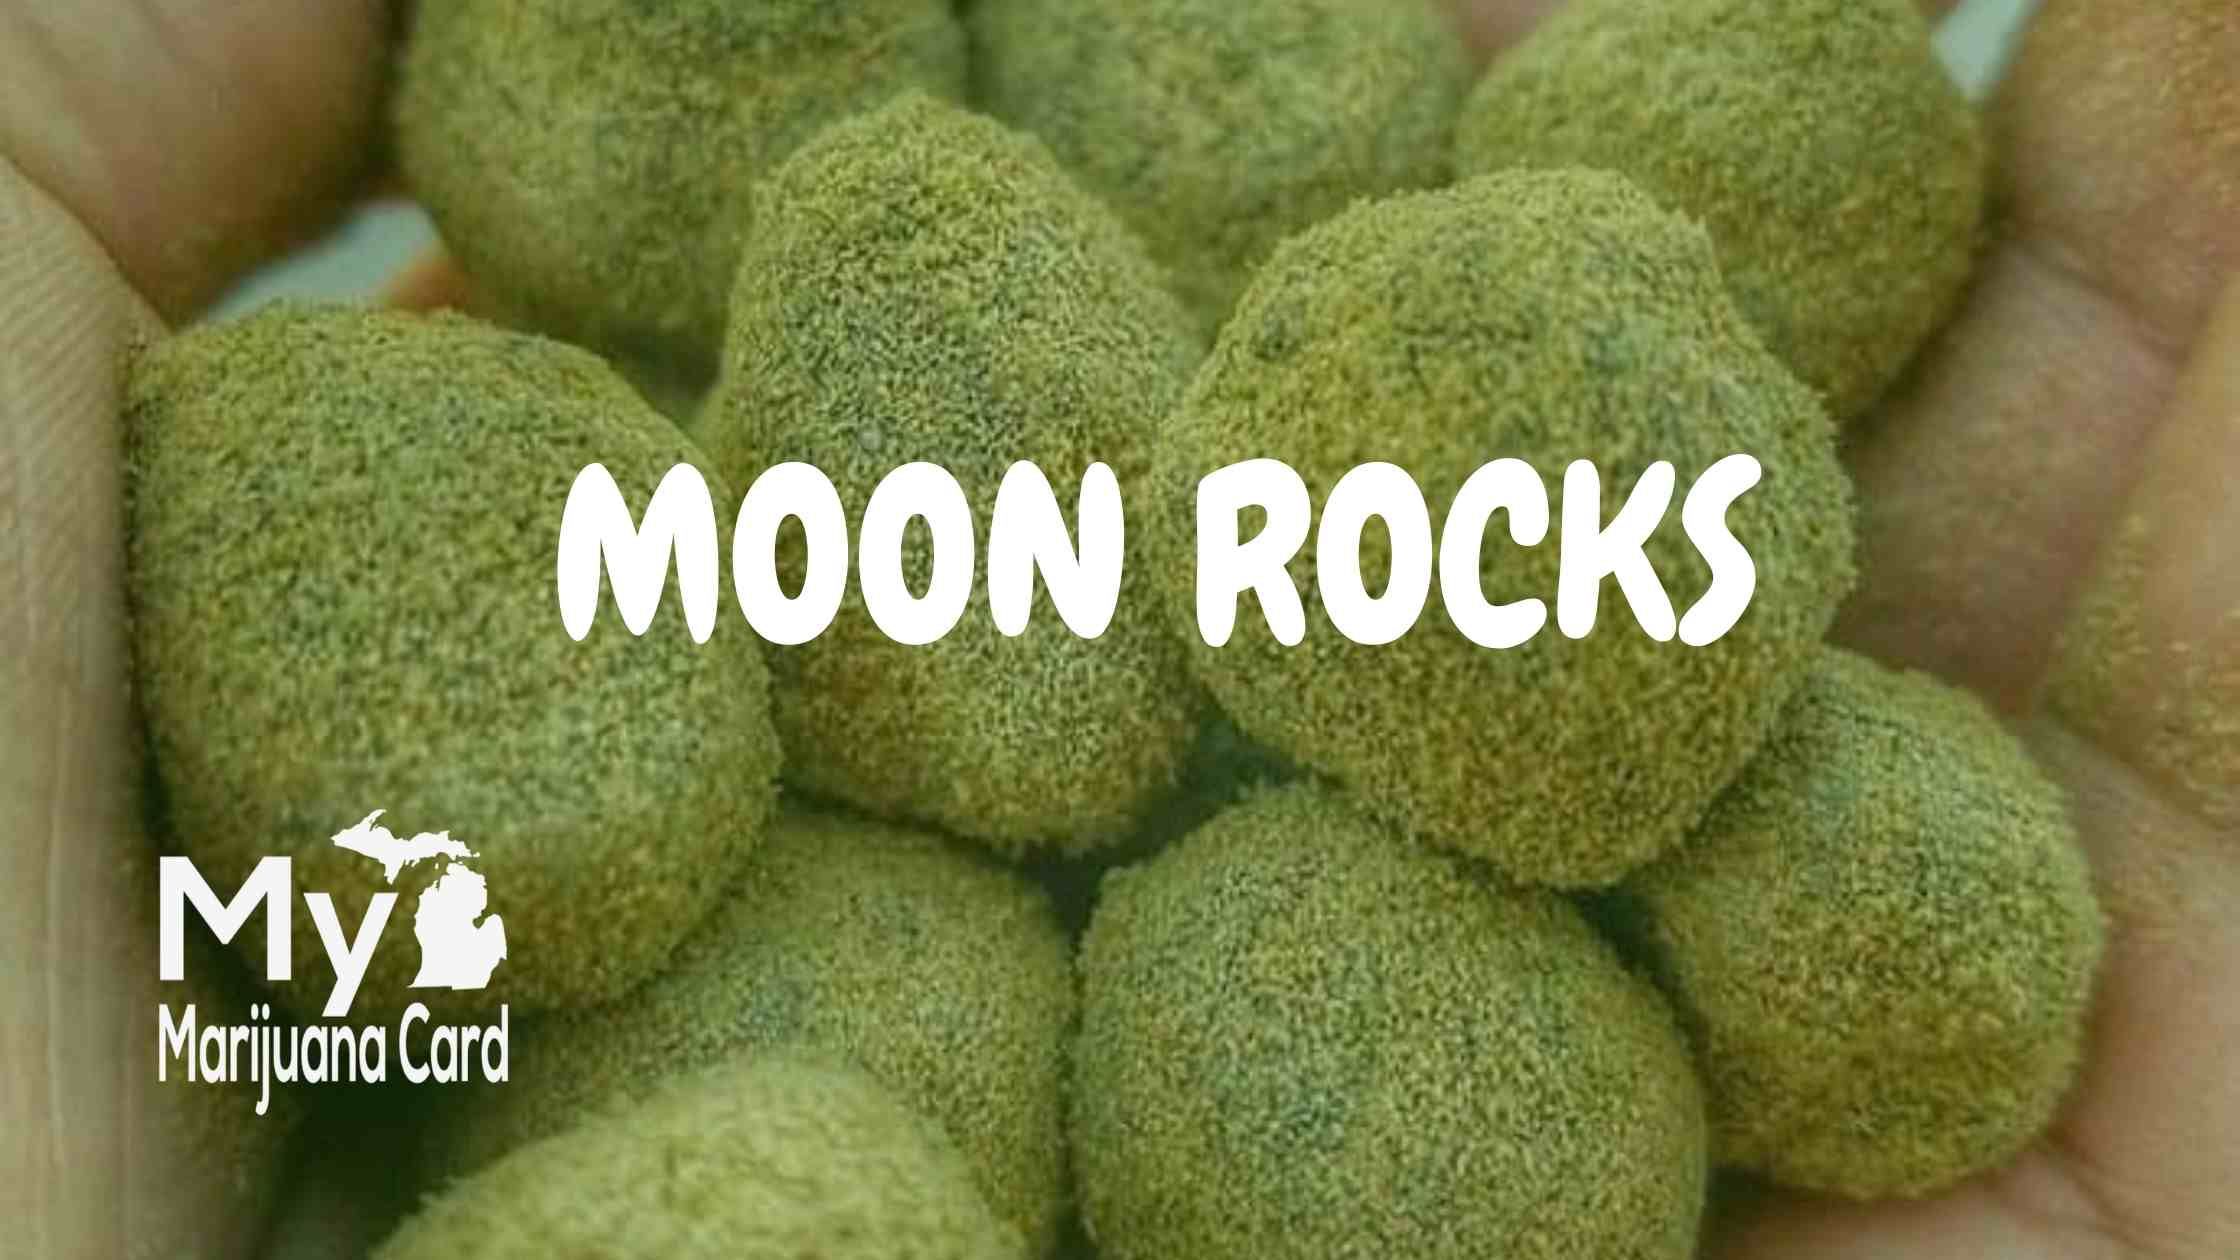 Everything You Need to Know About Cannabis Moon Rocks